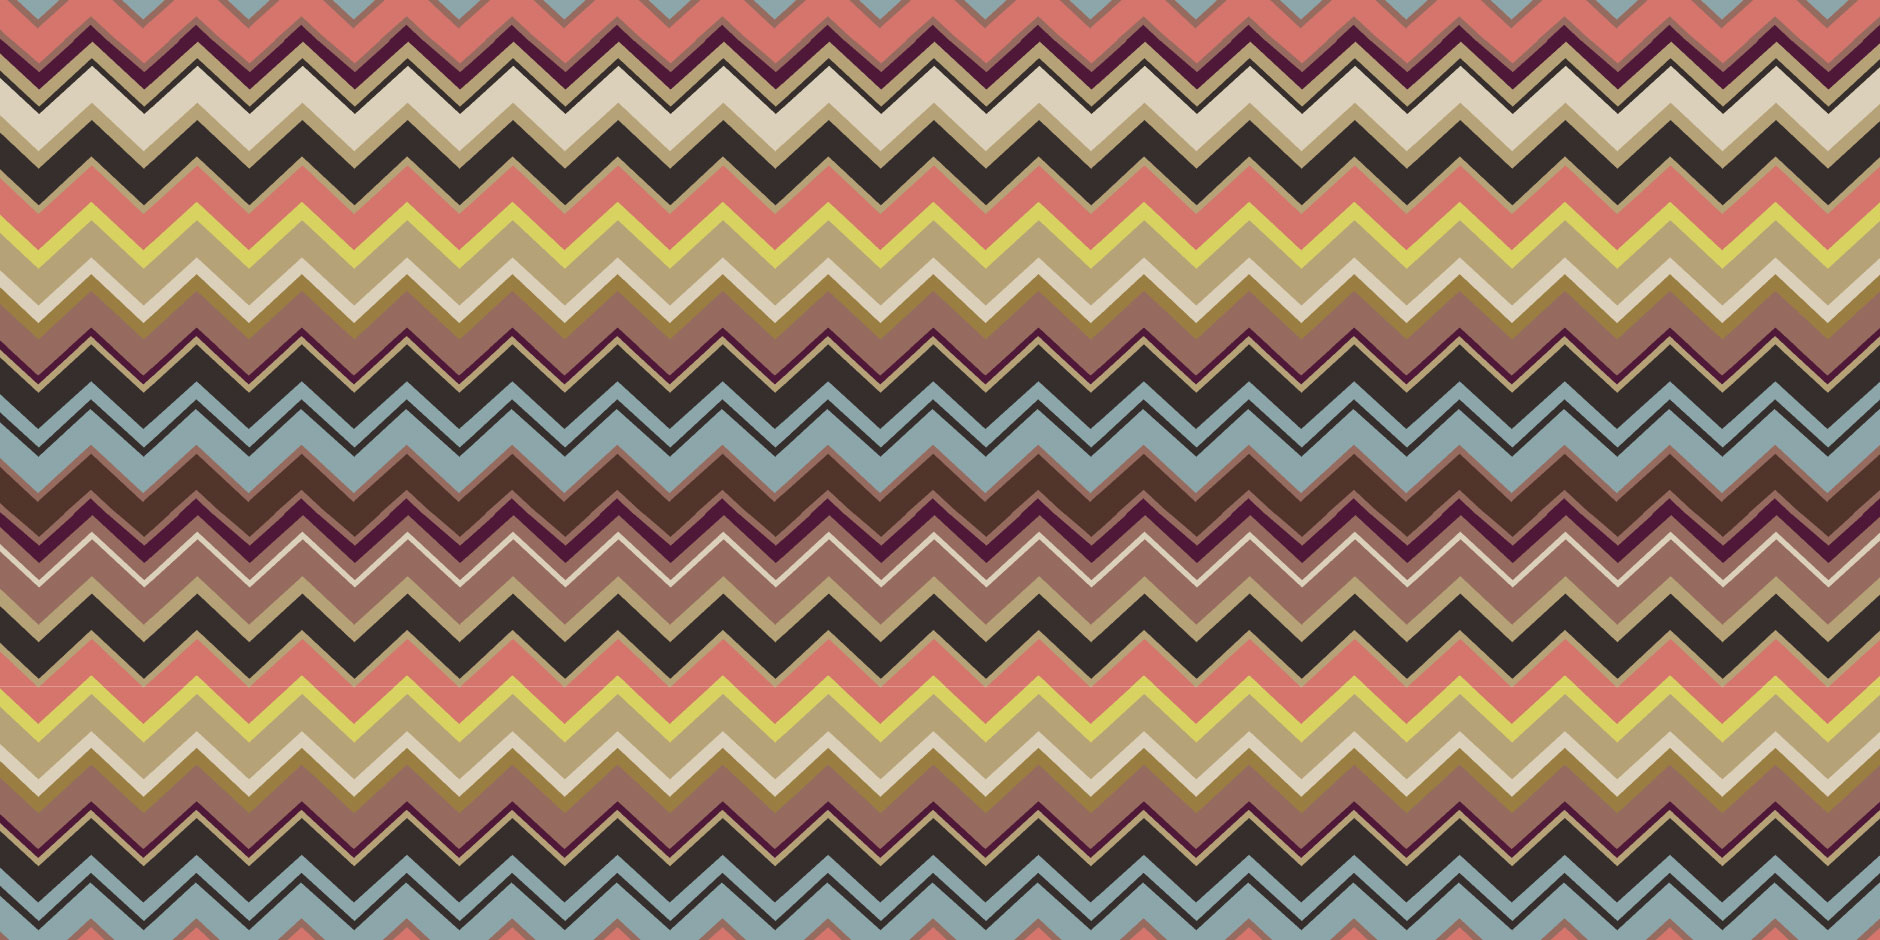 An iconic Missoni zigzag pattern in shades of gray, brown, tan and gold